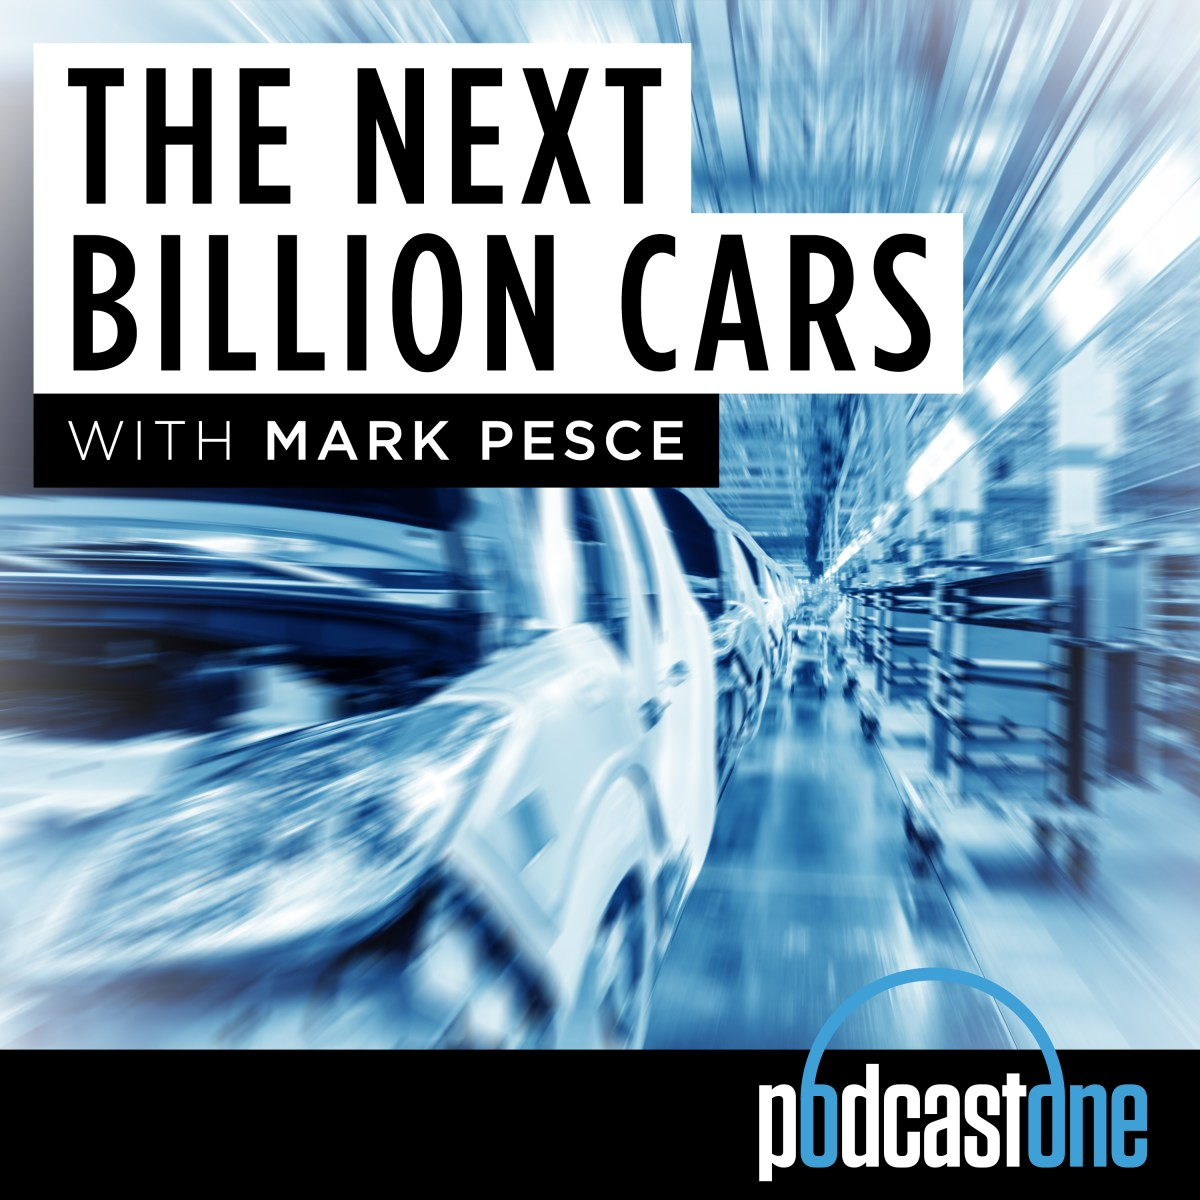 THE NEXT BILLION CARS Episode 11 – The Next Billion Bubbles